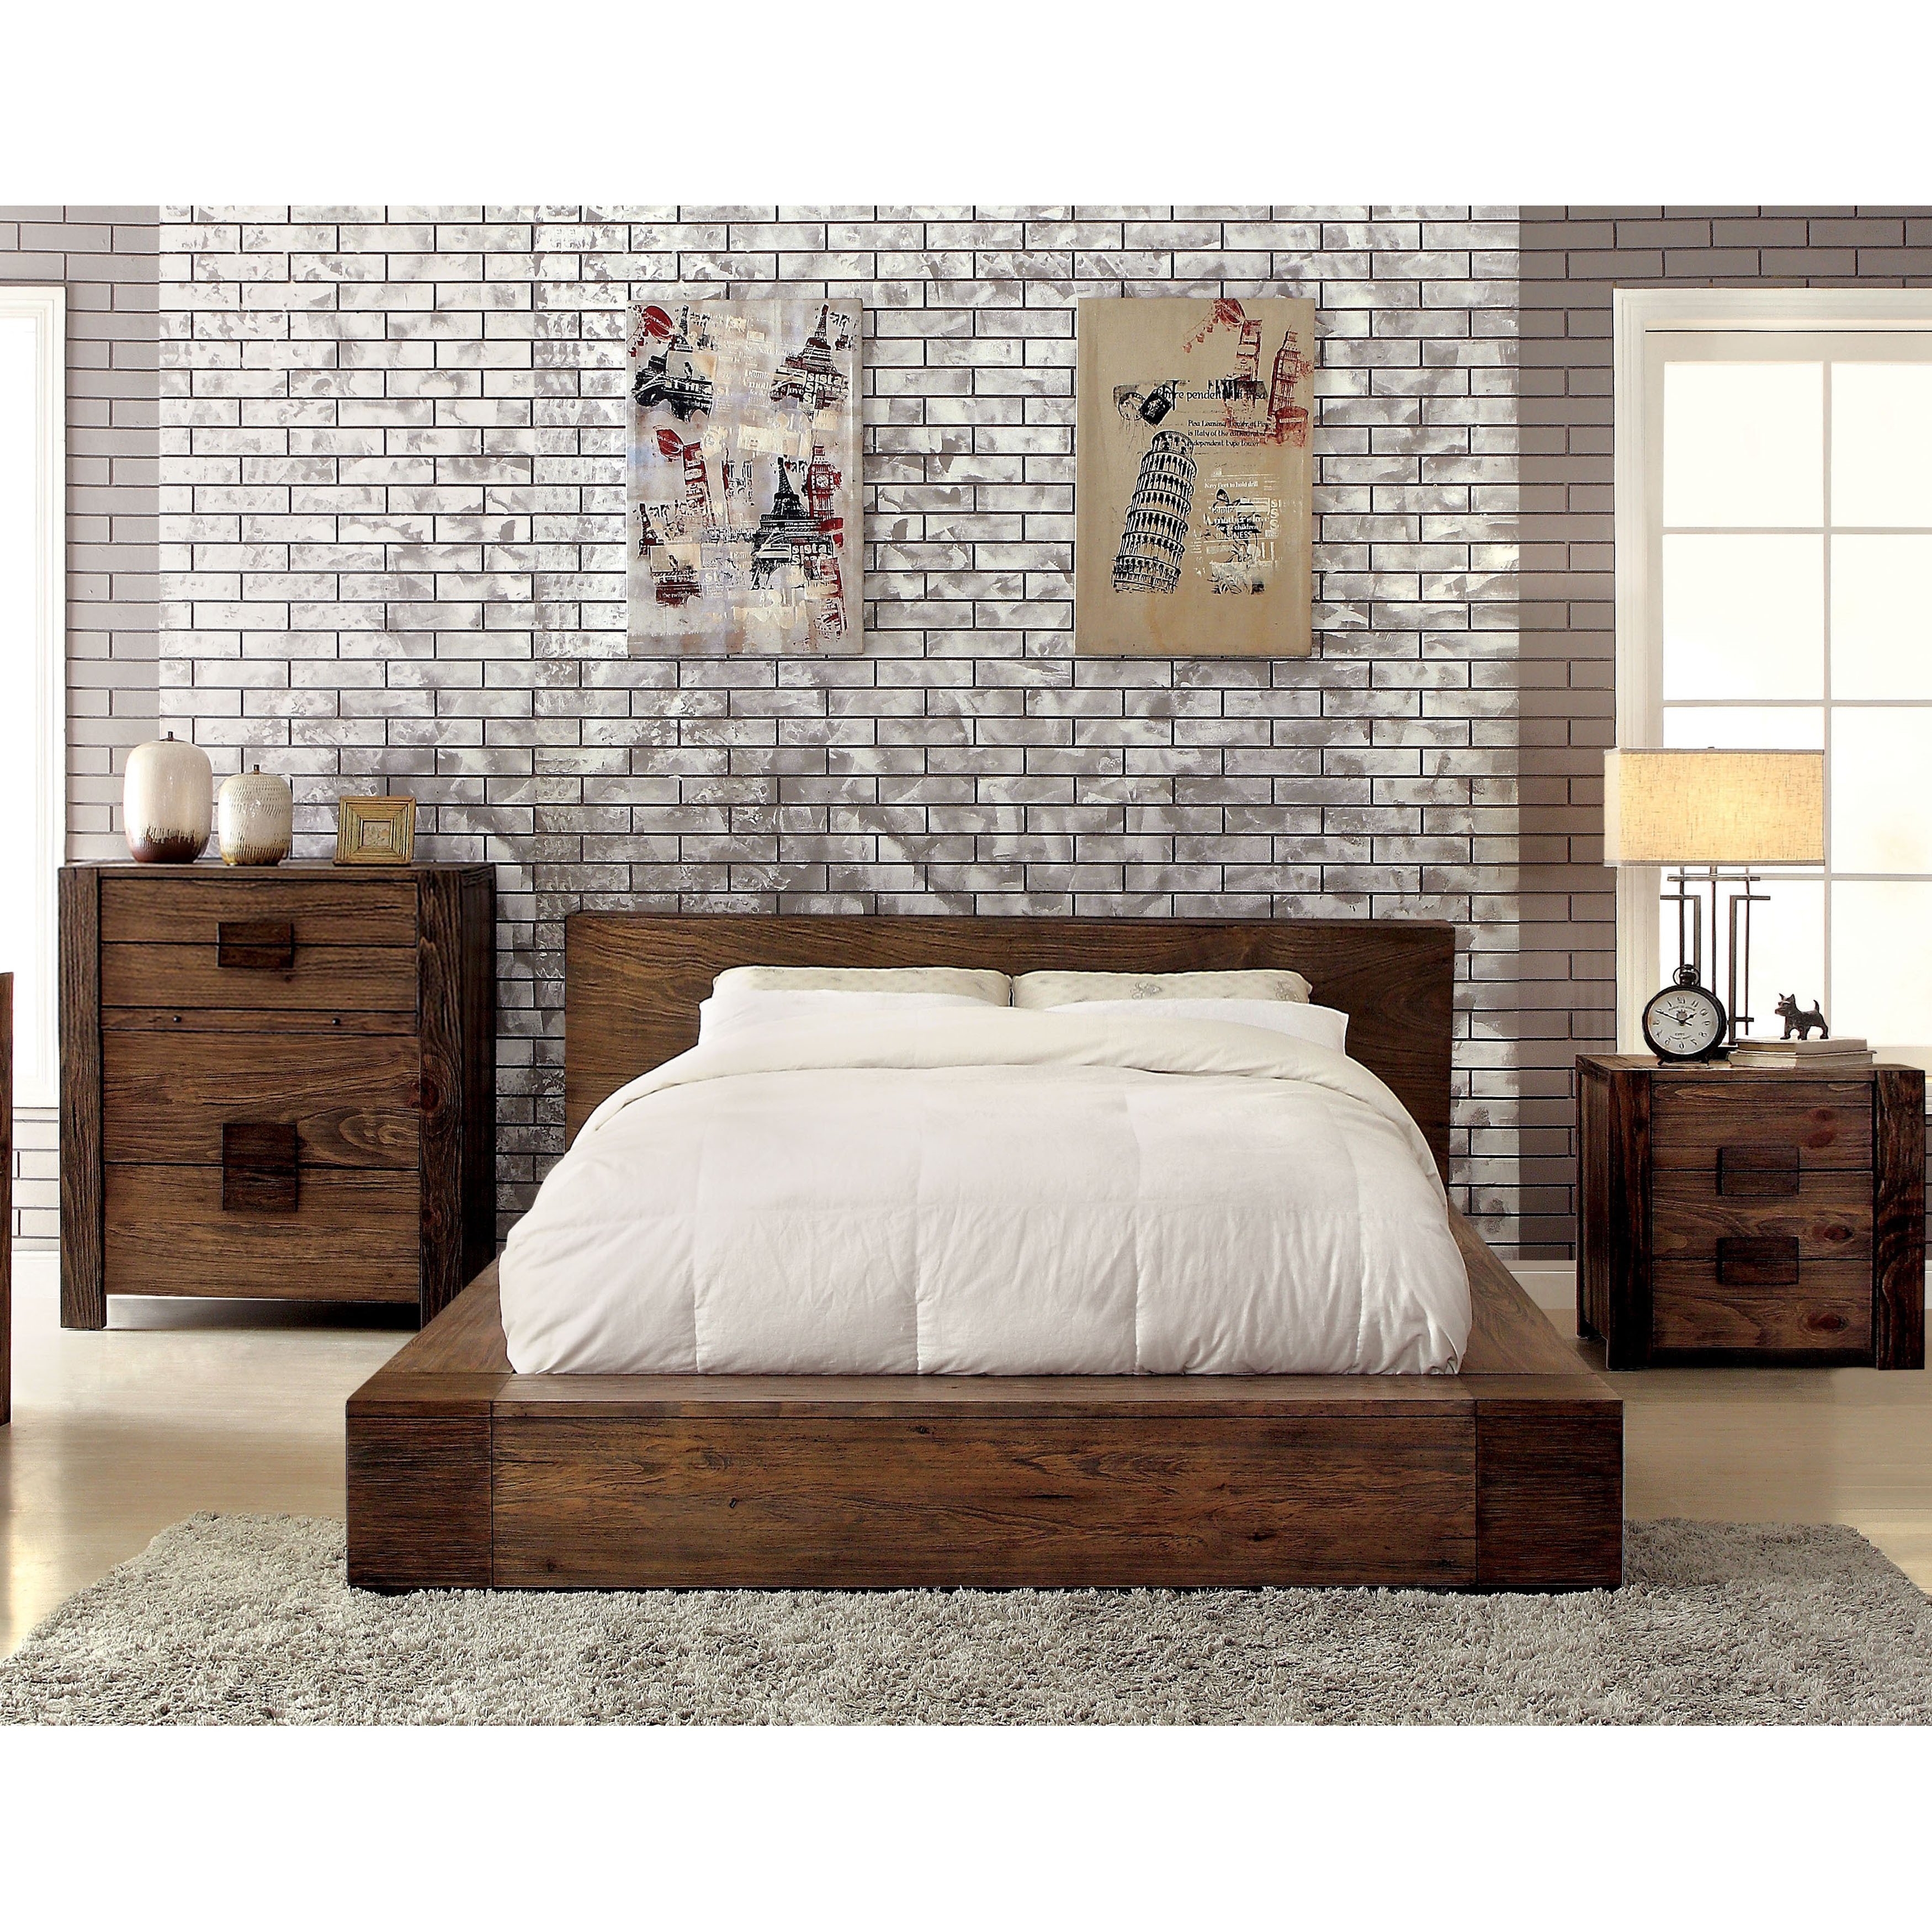 Genial Pine Canopy Kalmia 3 Piece Natural Tone Low Profile Bedroom Set   Free  Shipping Today   Overstock   18188890